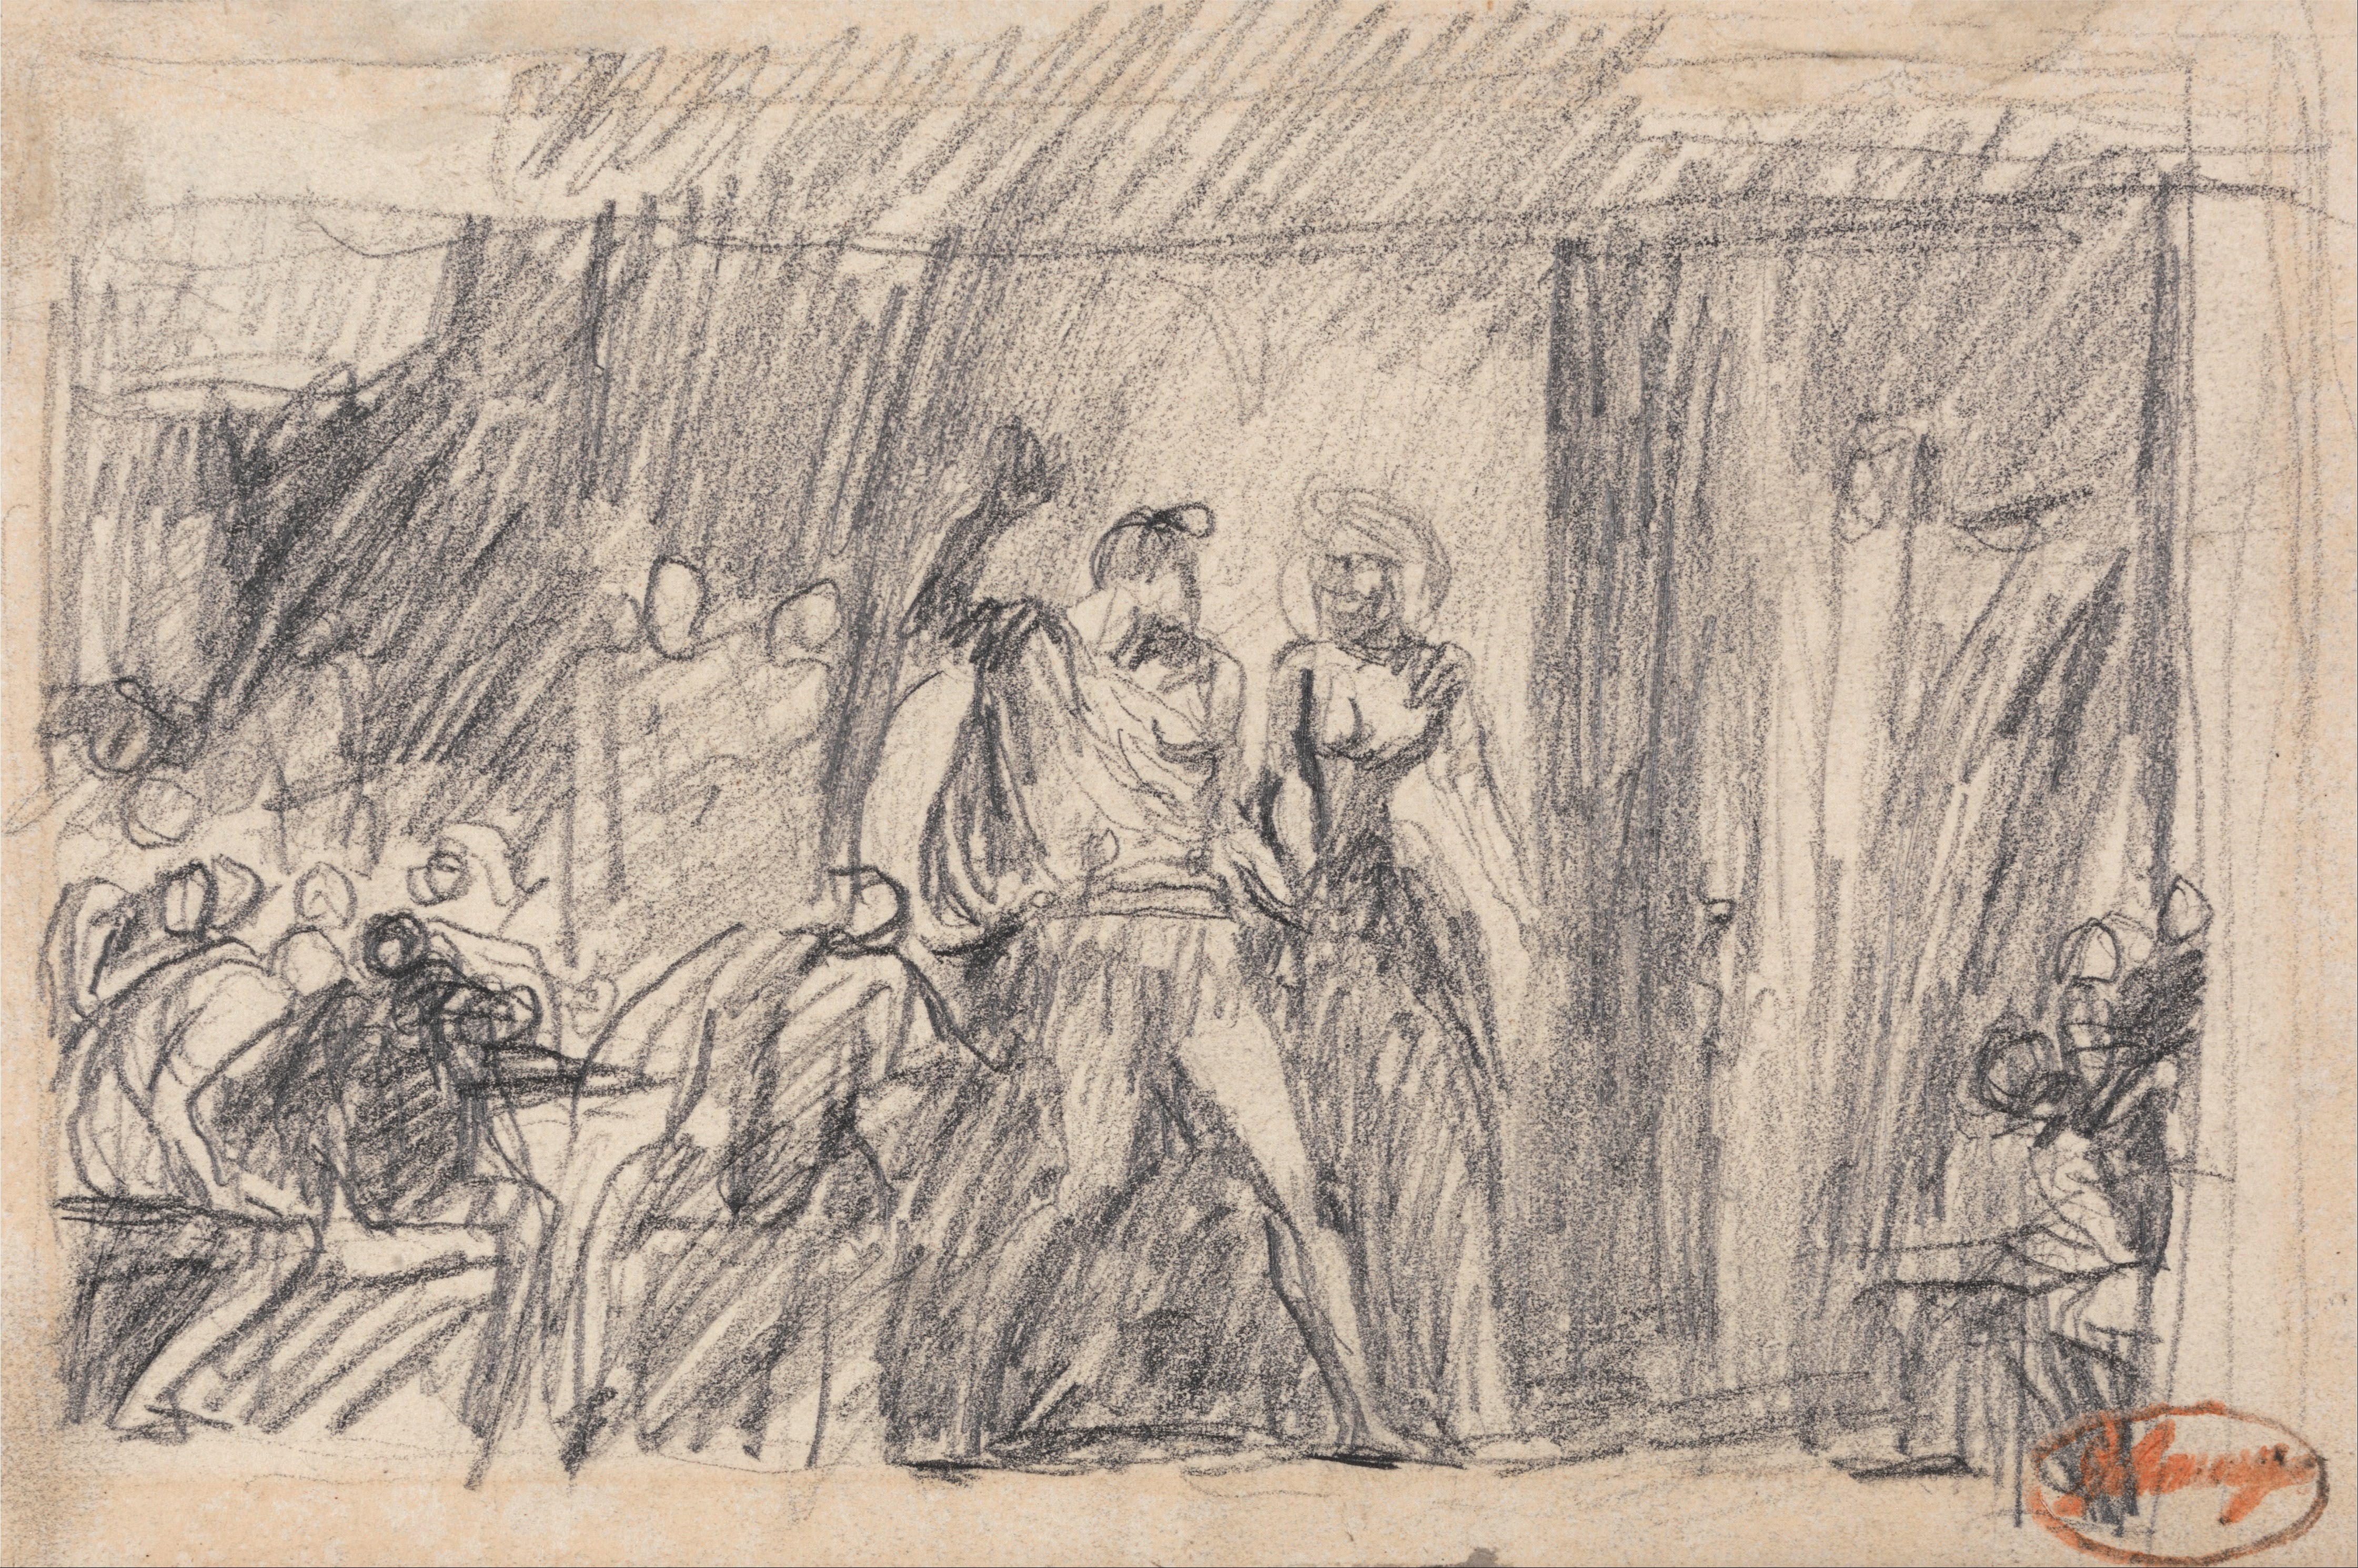 act 3 scene 4 the banquet scene the banquet essay Macbeth summary essay research paper act iii scene iicontext this is the scene in which lady macbeth remains calm and tries to make sure macbeth is in a good mmod before the banquet macbeth on the other hand is feeling terrible about the crimes he.